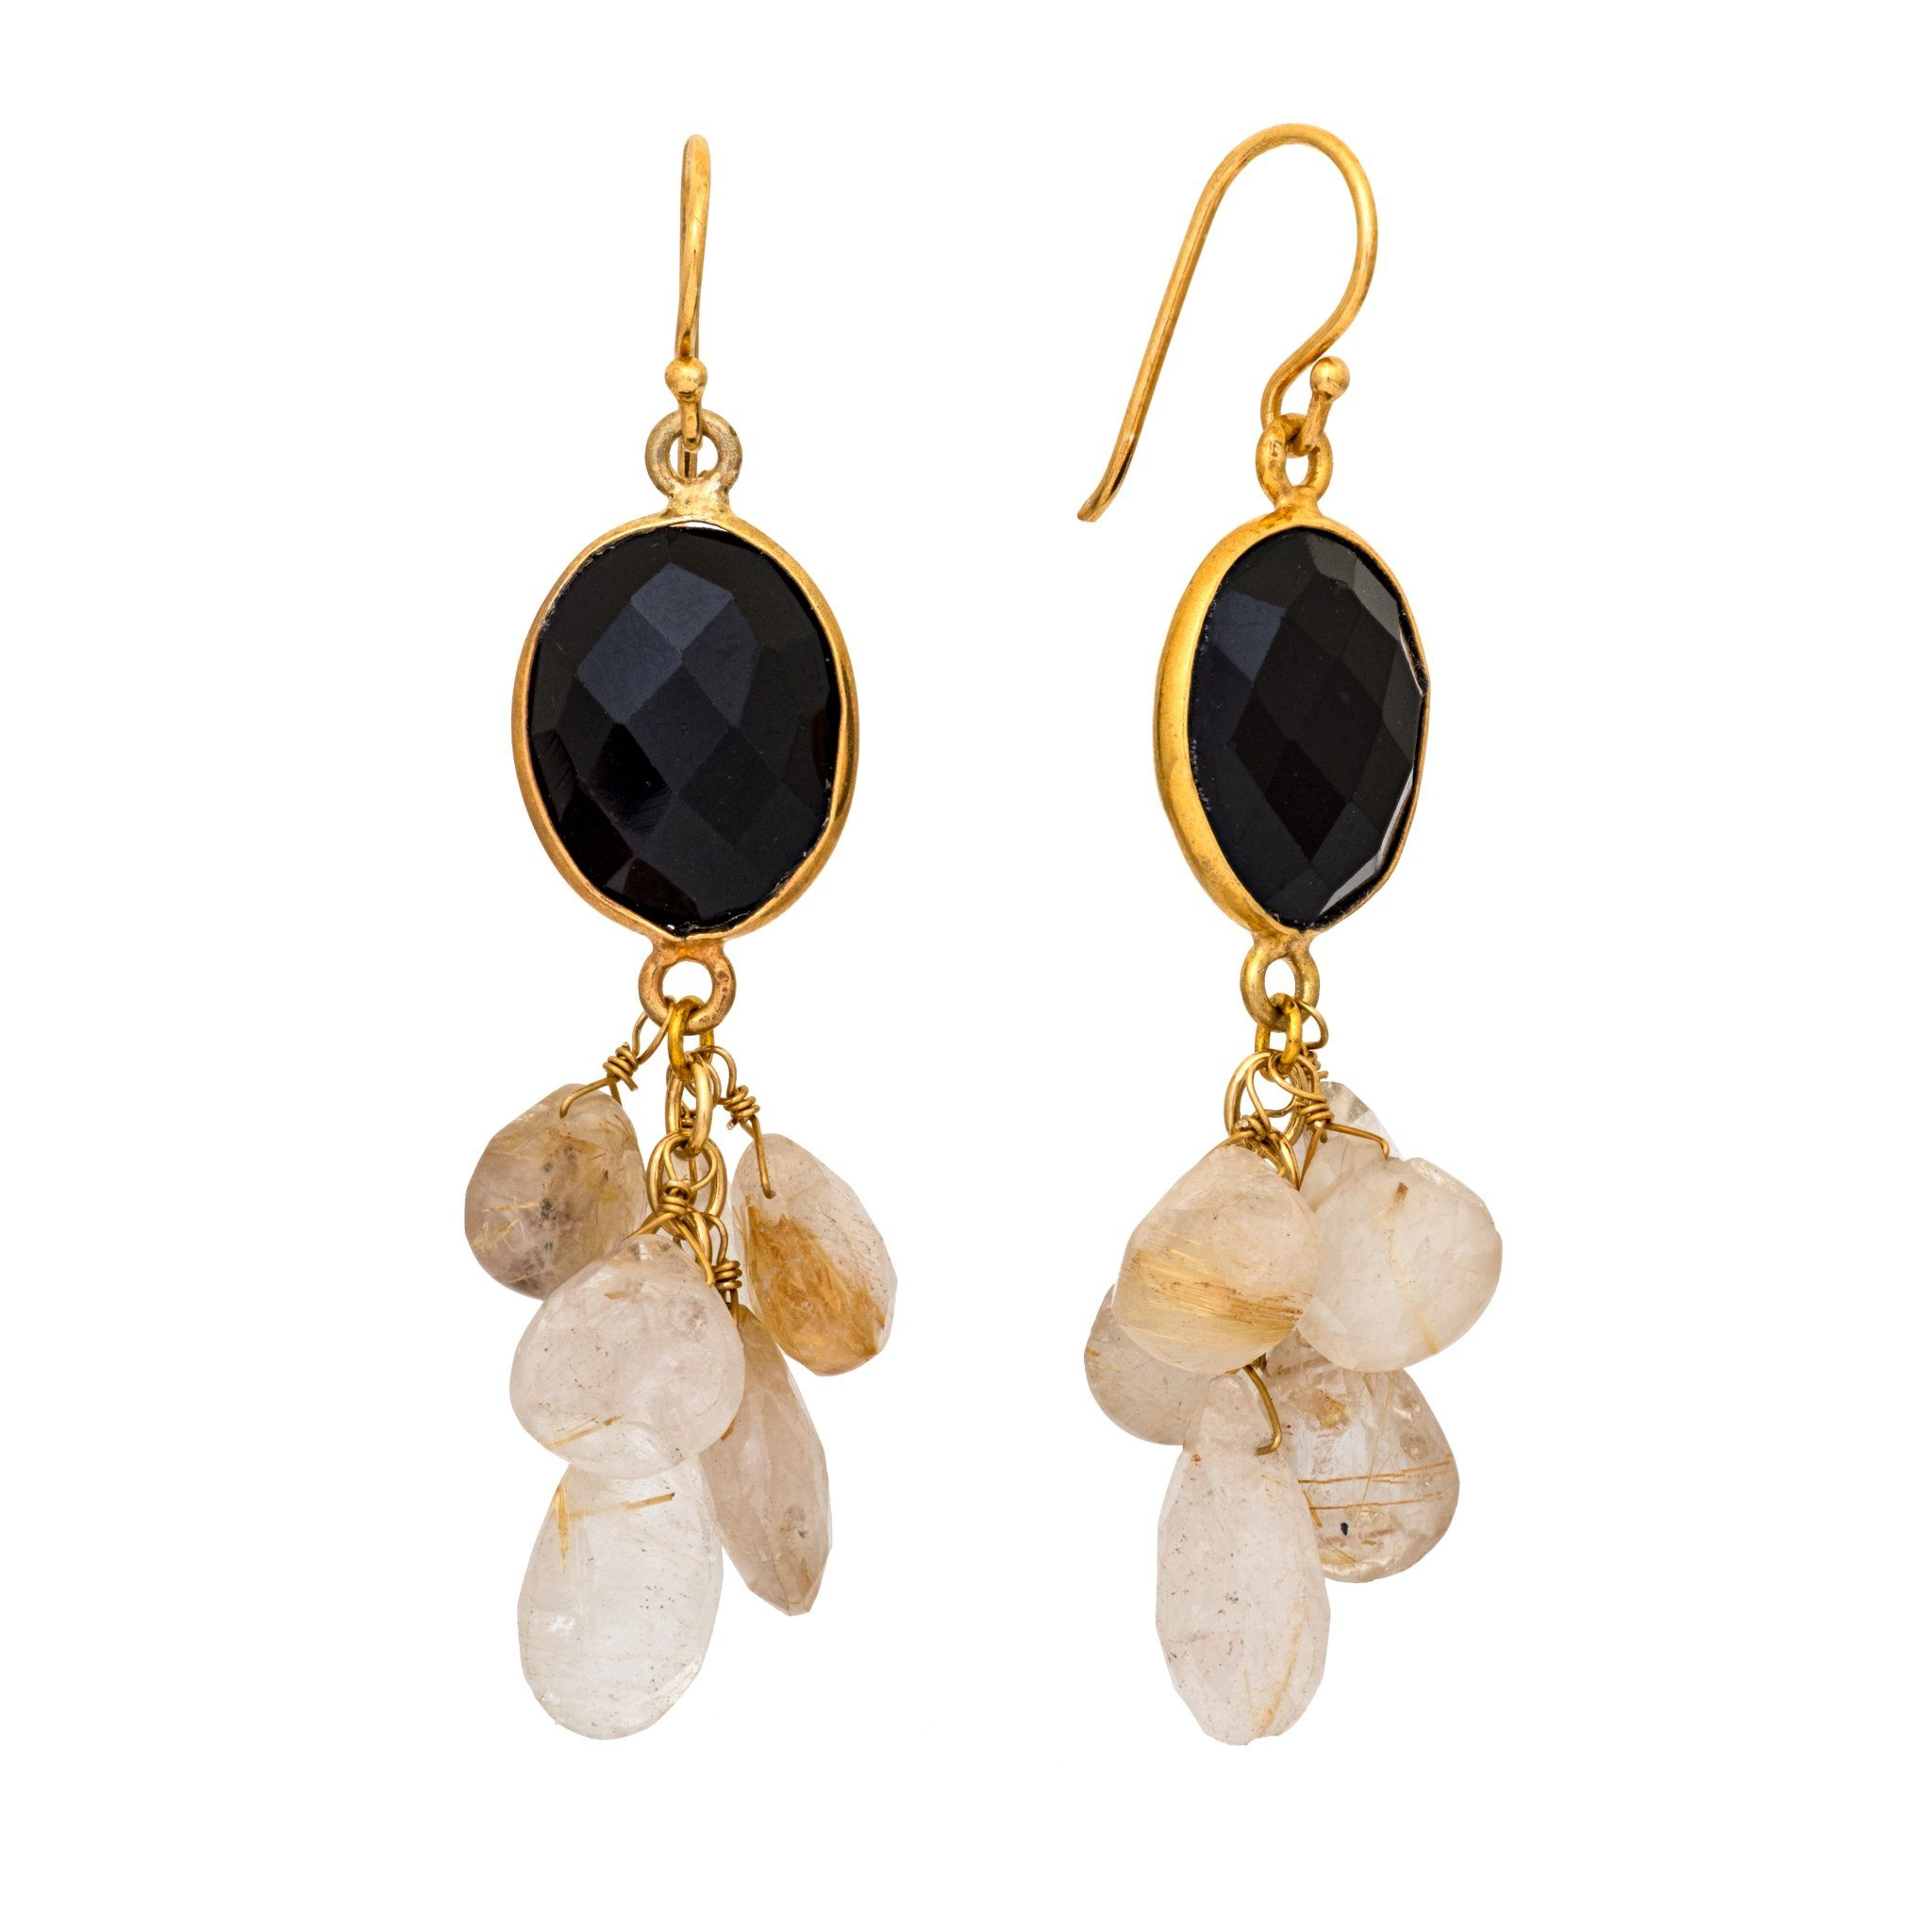 LUZ black onyx and rutile cluster earrings - MadamSiam